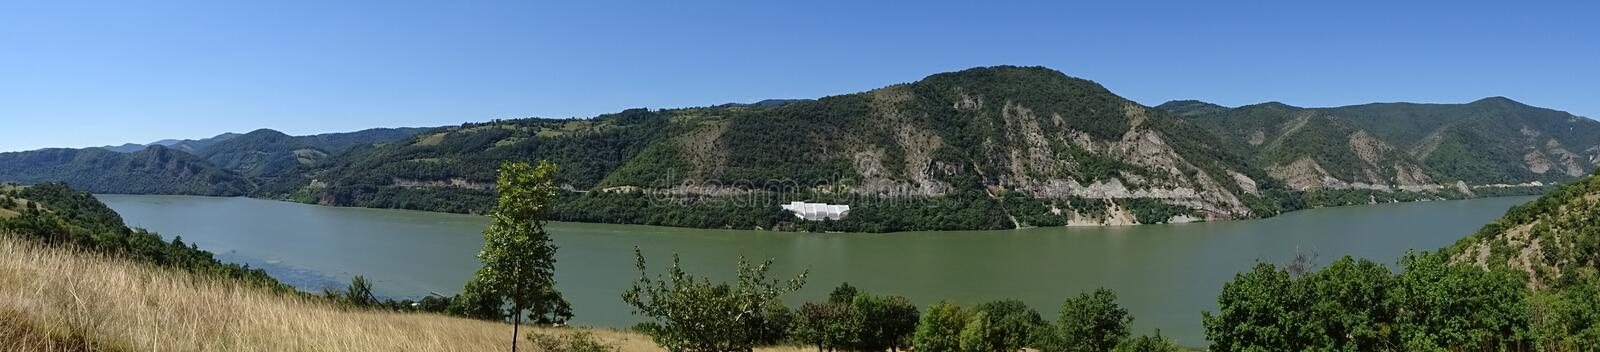 Danube - Panoramic view royalty free stock images